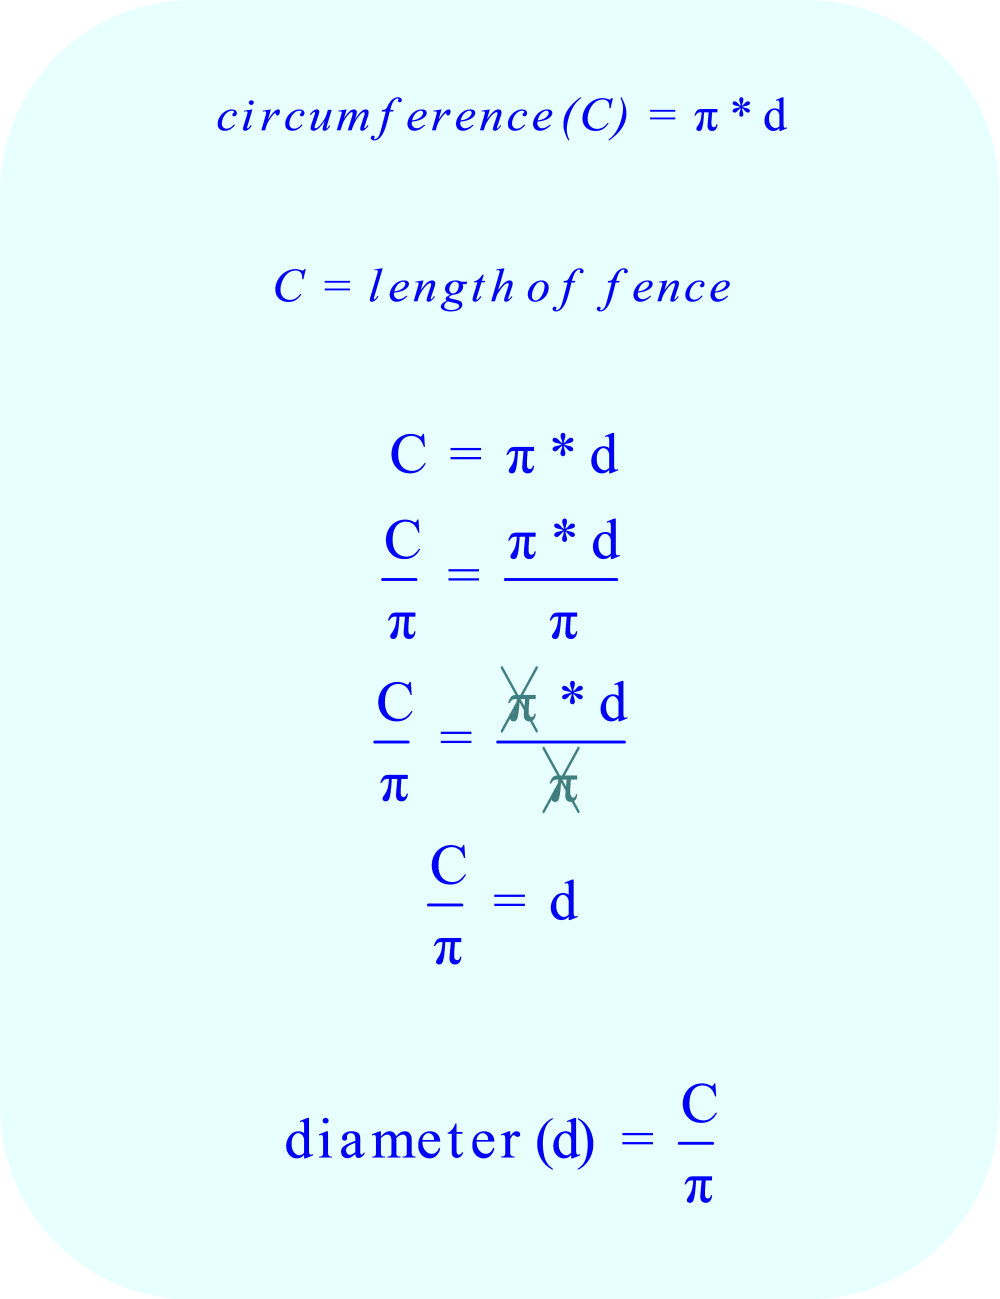 Geometry - Calculate diameter given the circumference